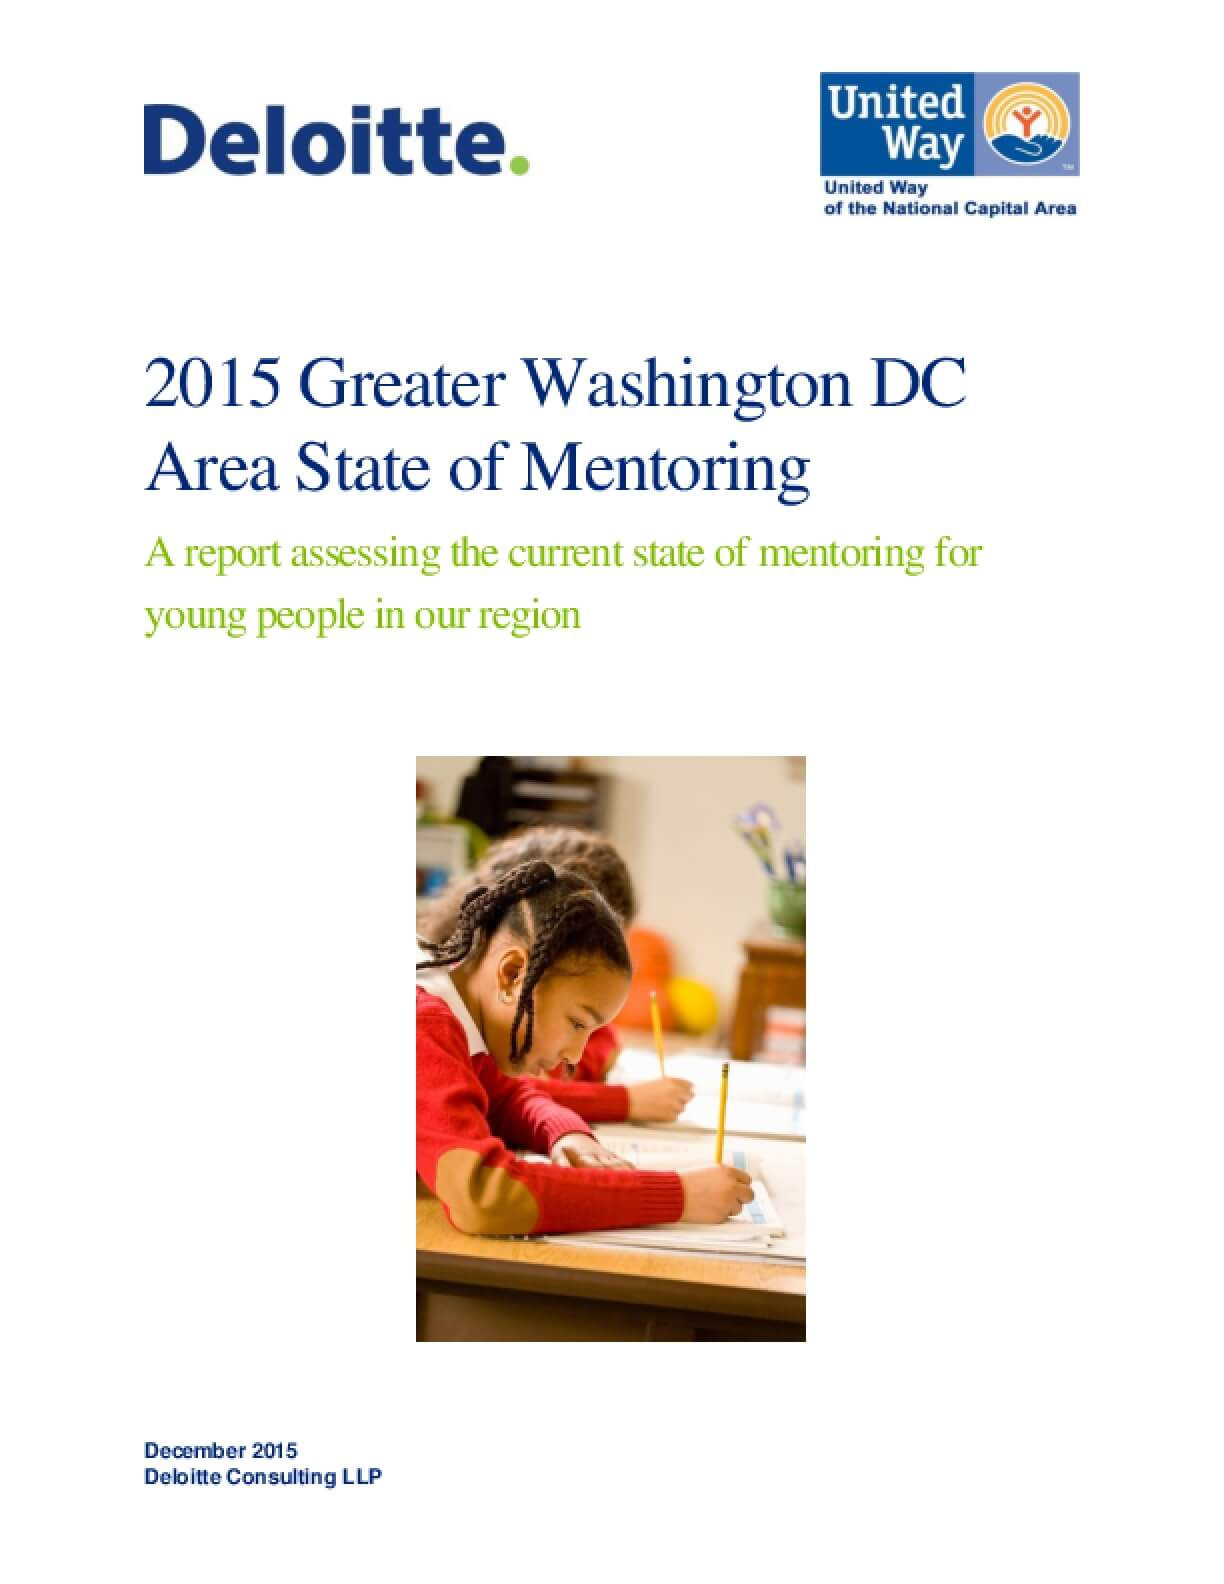 2015 Greater Washington DC Area State of Mentoring: A Report Assessing the Current State of Mentoring for Young People in Our Region